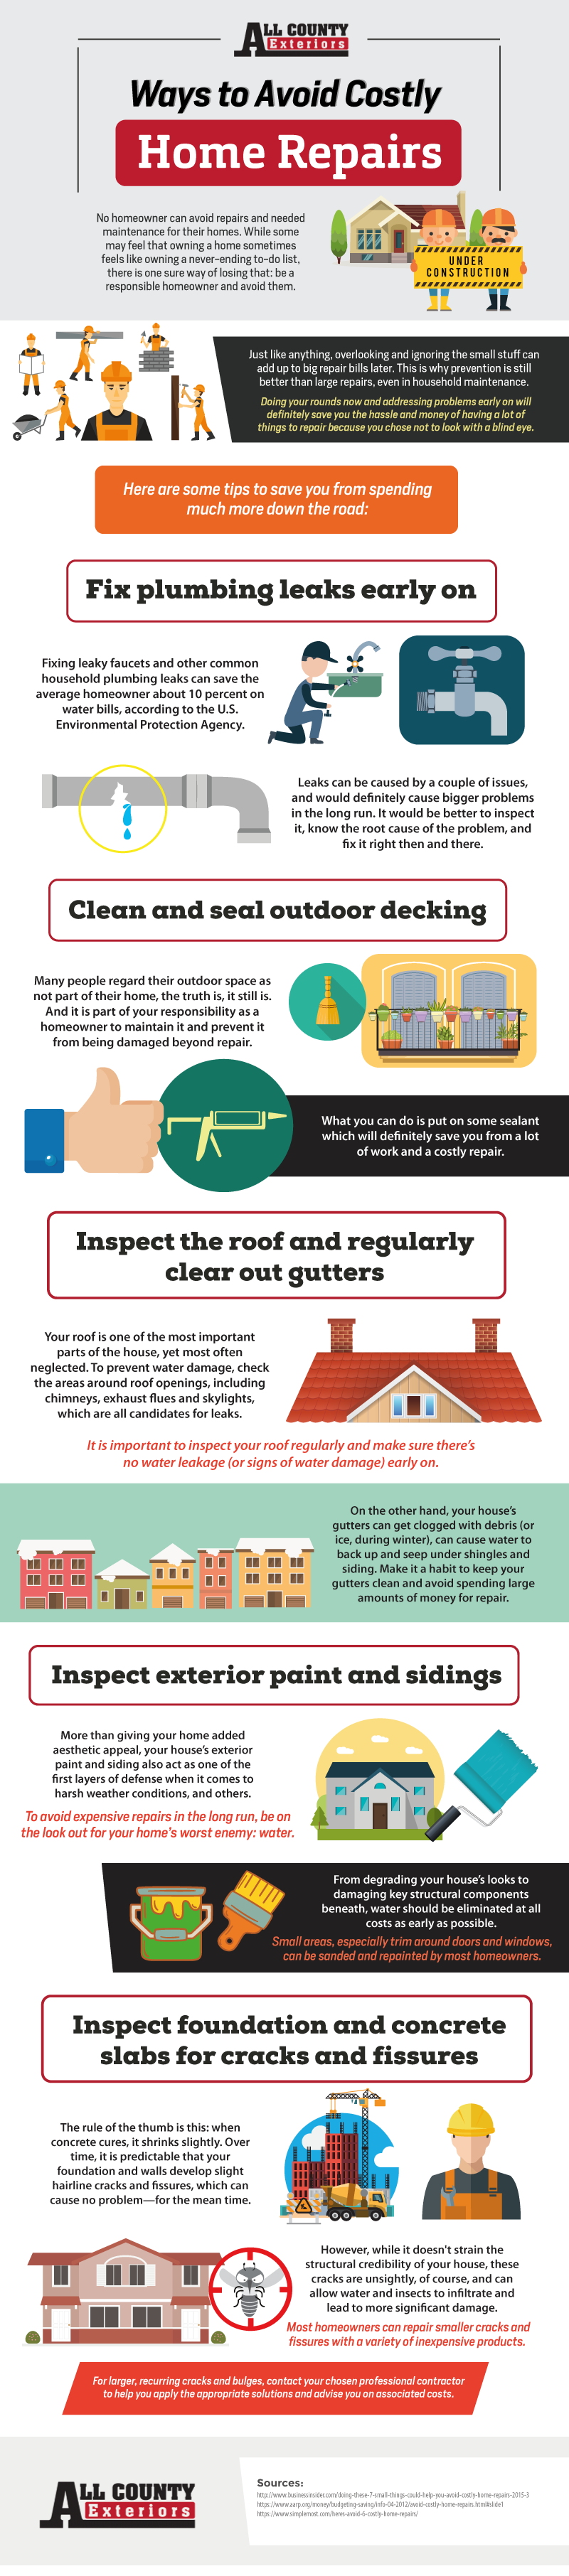 Ways To Avoid Costly Home Repairs Infographic